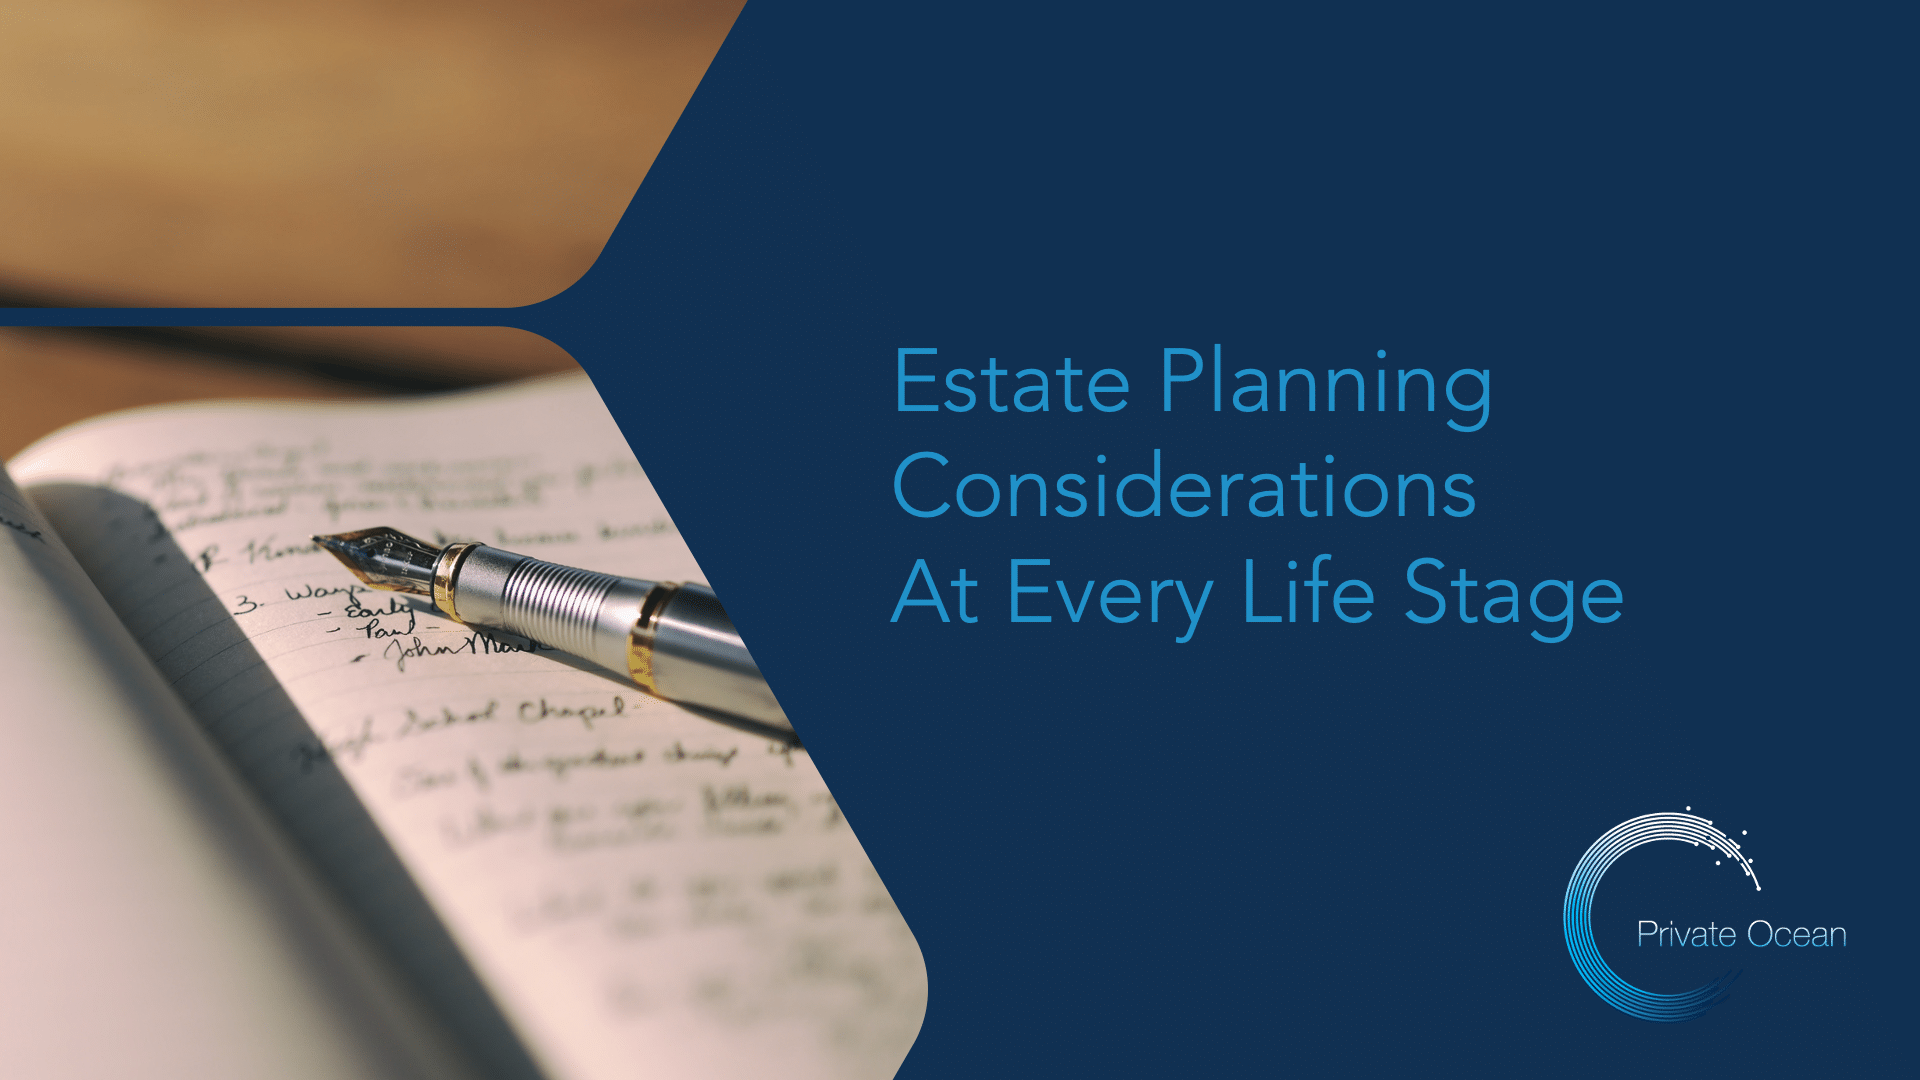 Estate Planning at Every Life Stage